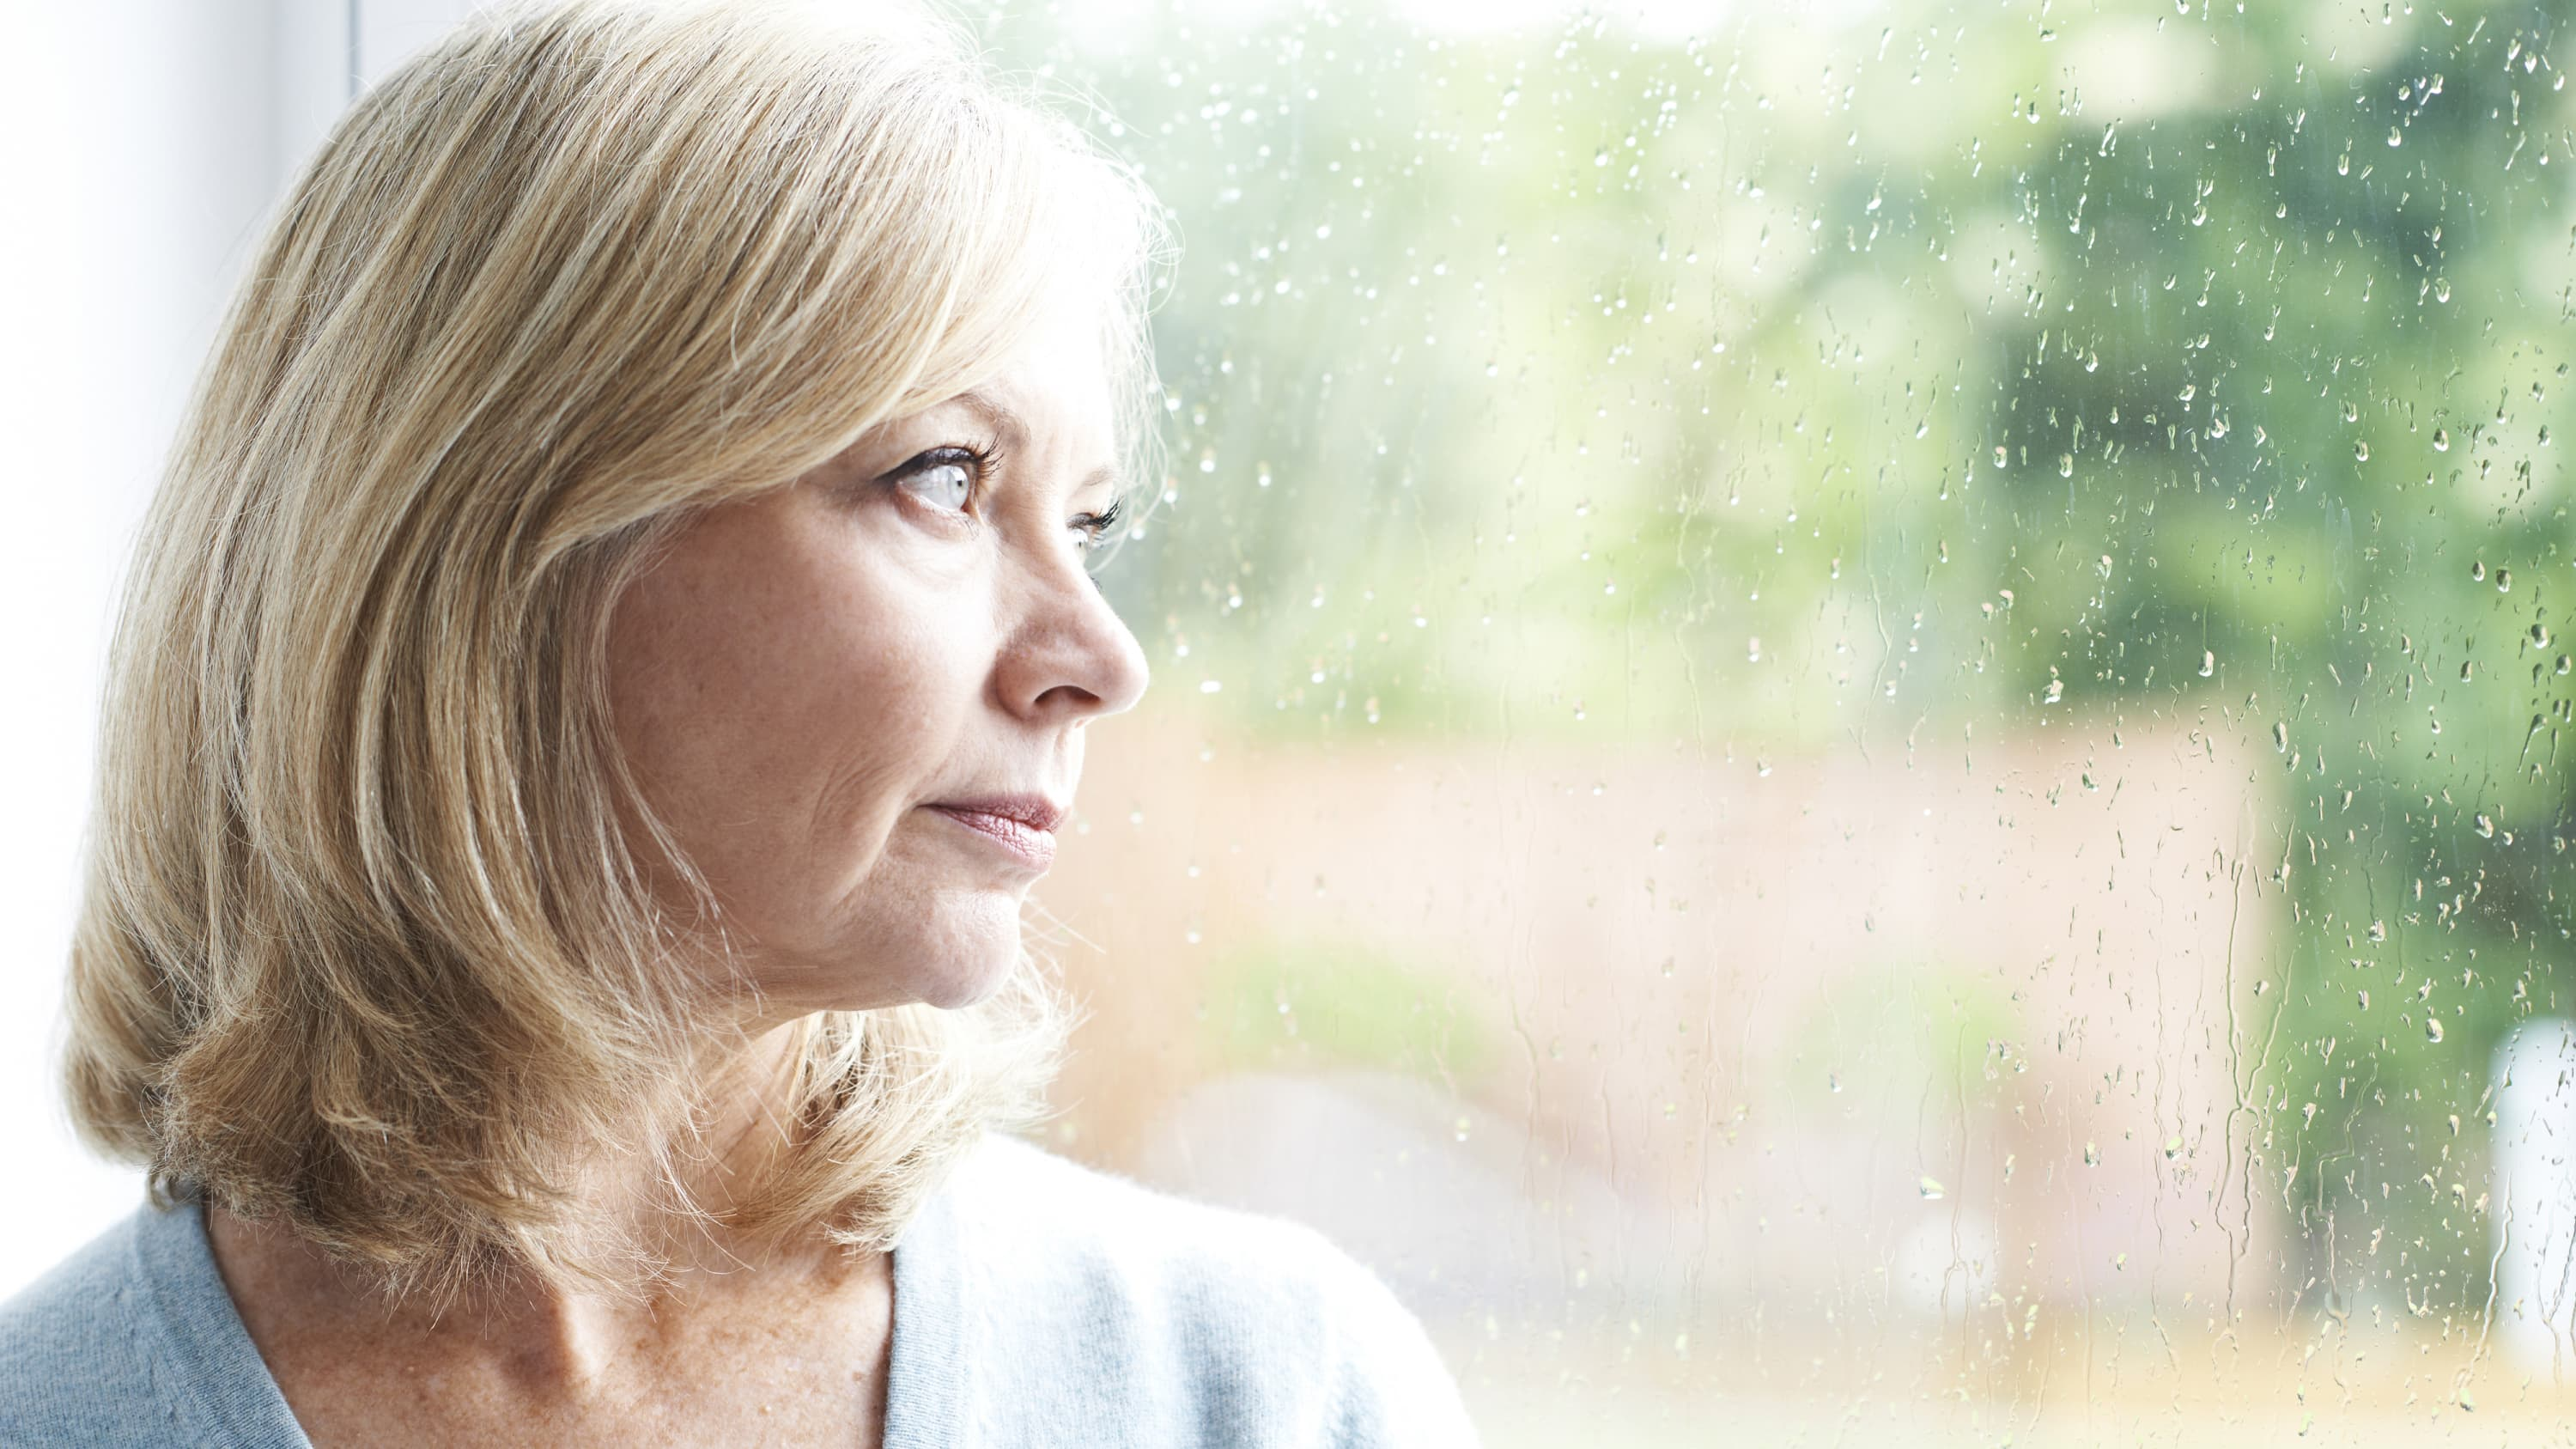 Mature woman who has Wilson disease gazing out a window.